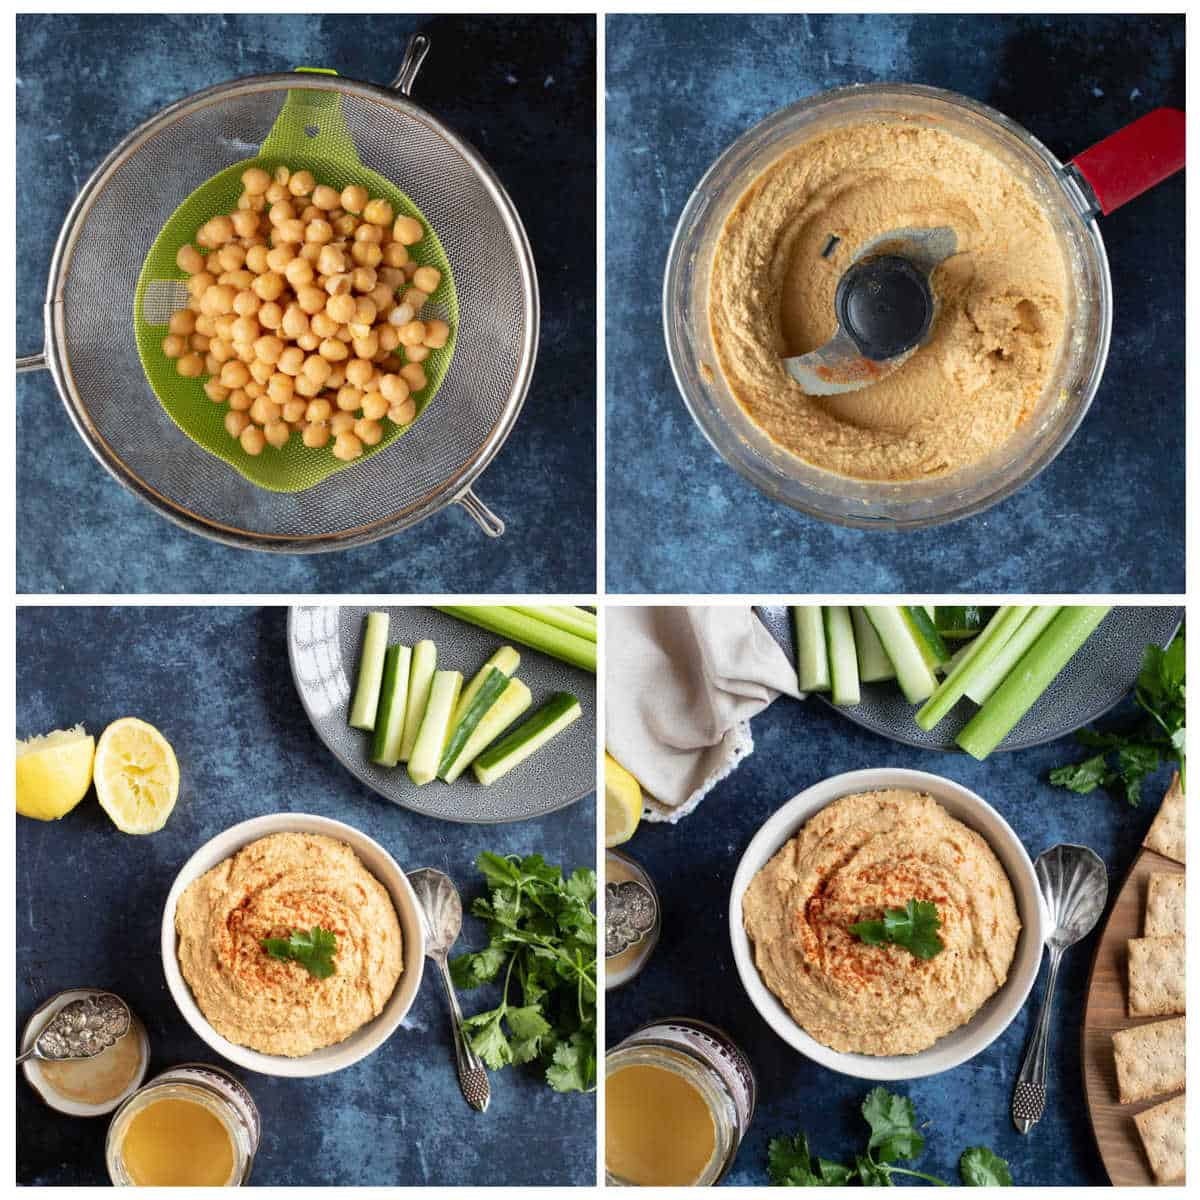 Step by step photo instructions for making homemade hummus.